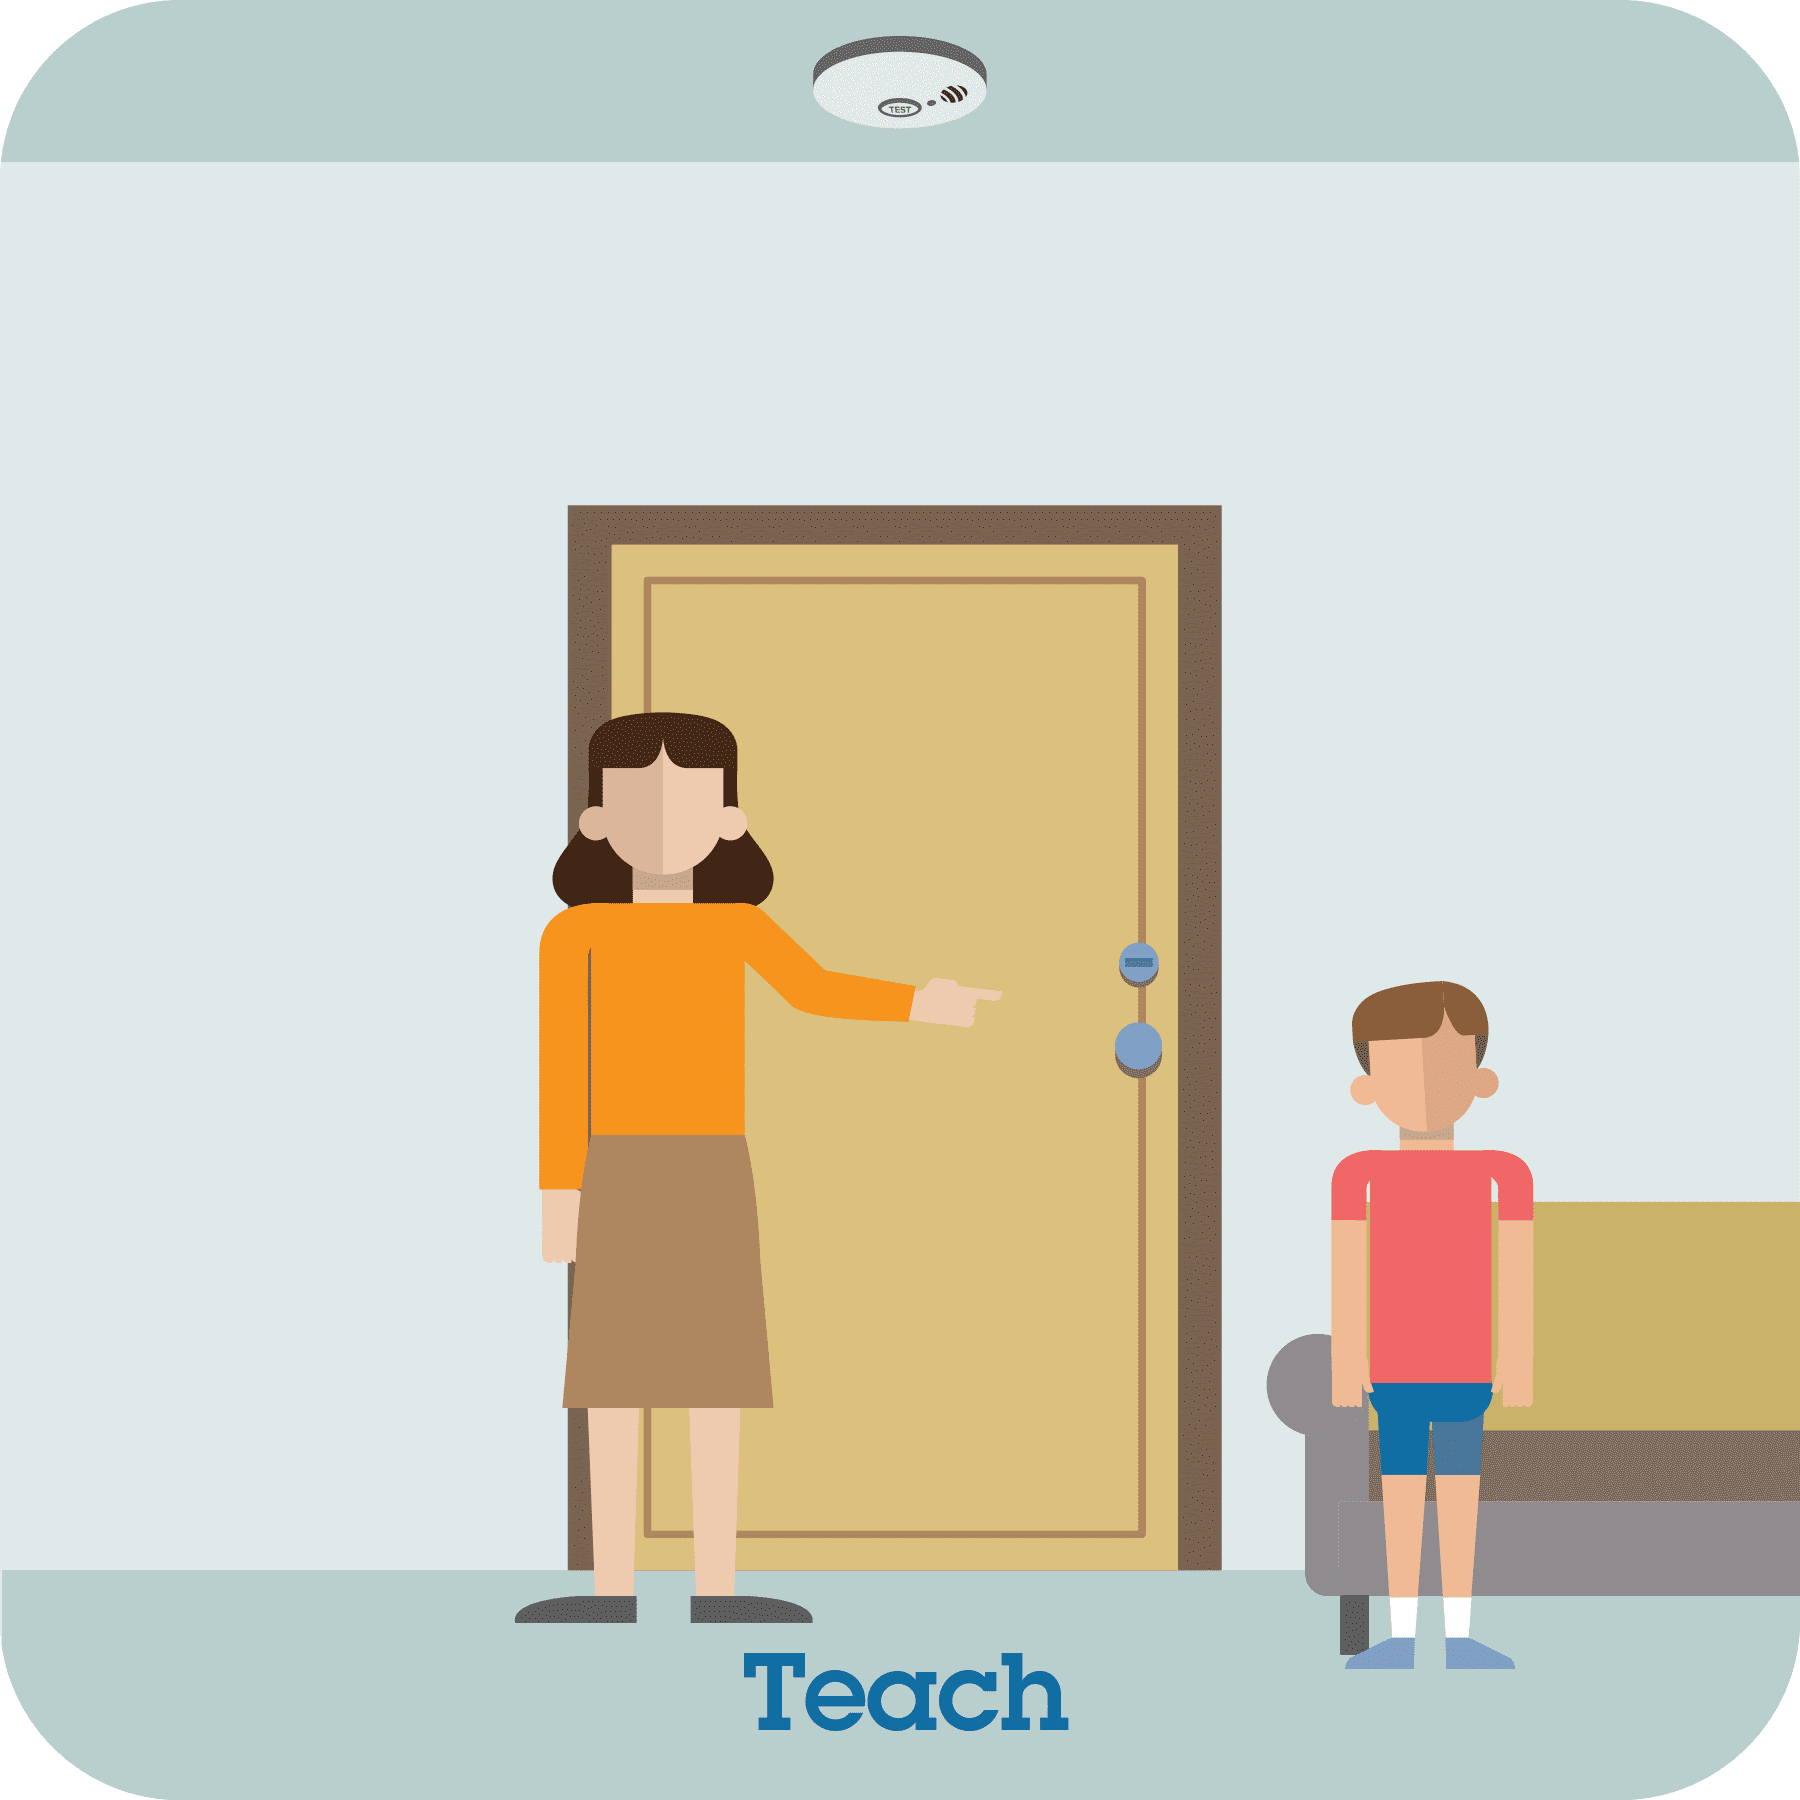 Woman showing boy the door with teach prompt.